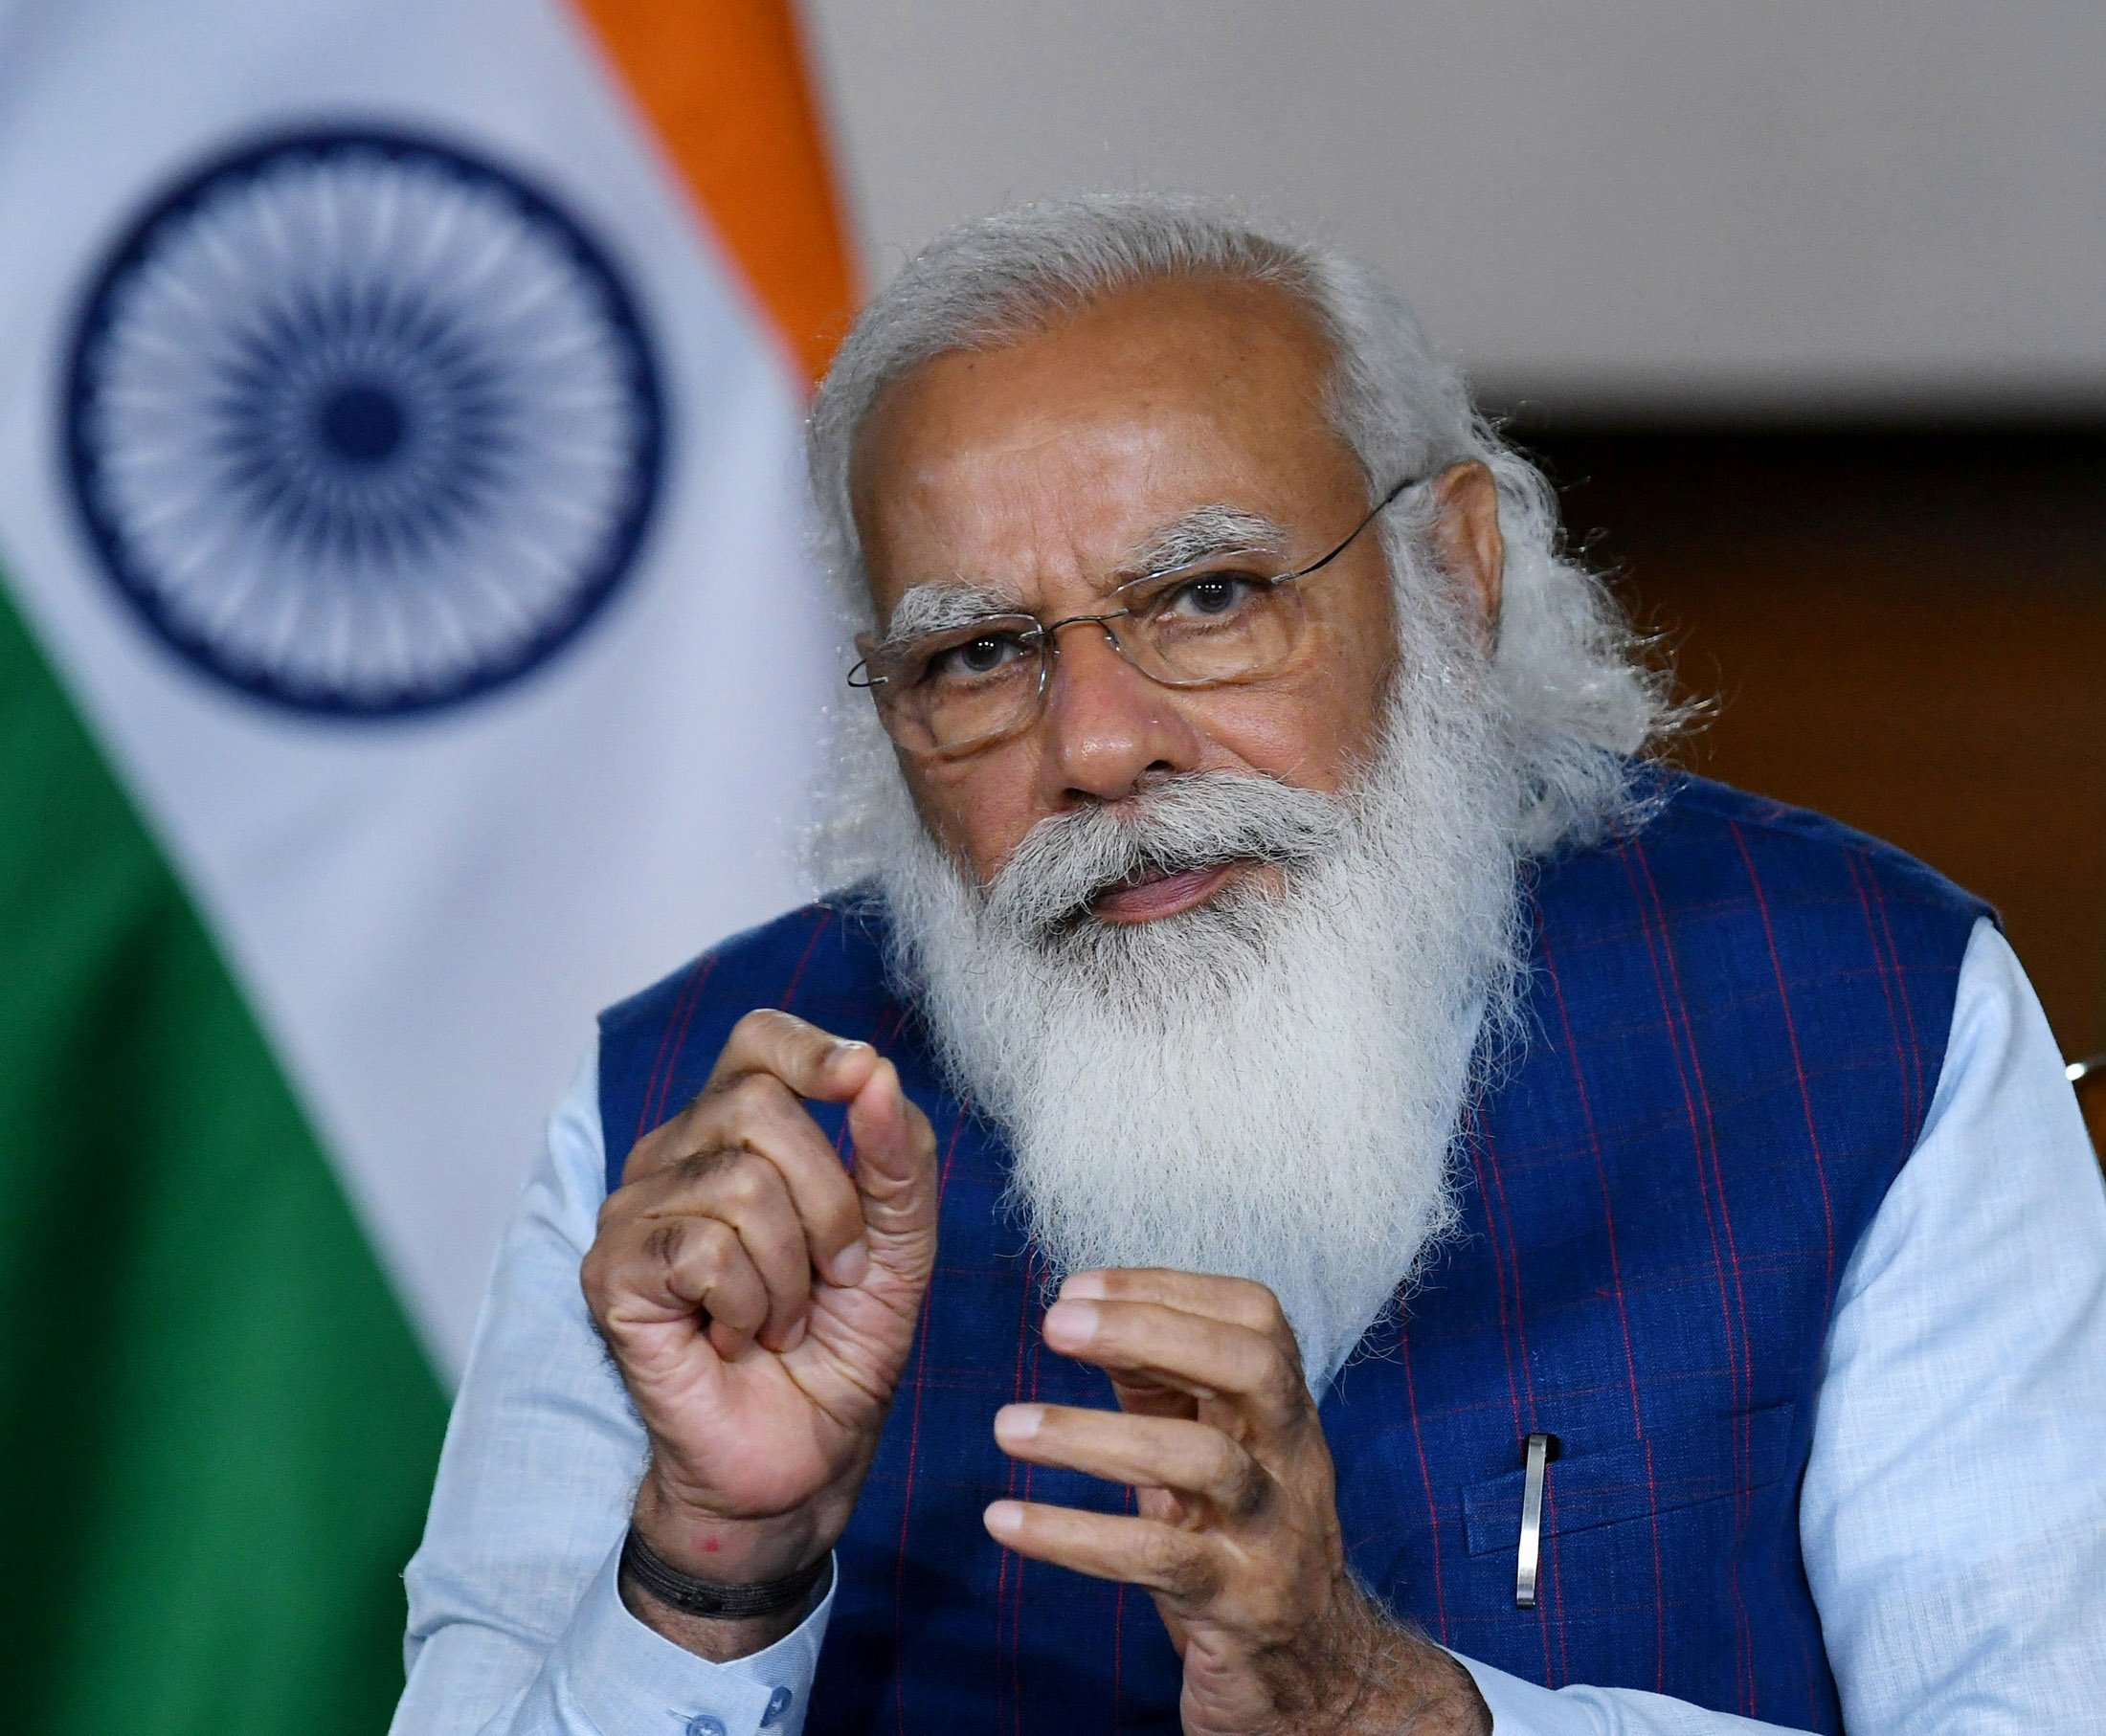 Covid resurgence: PM reviews status of oxygen availability